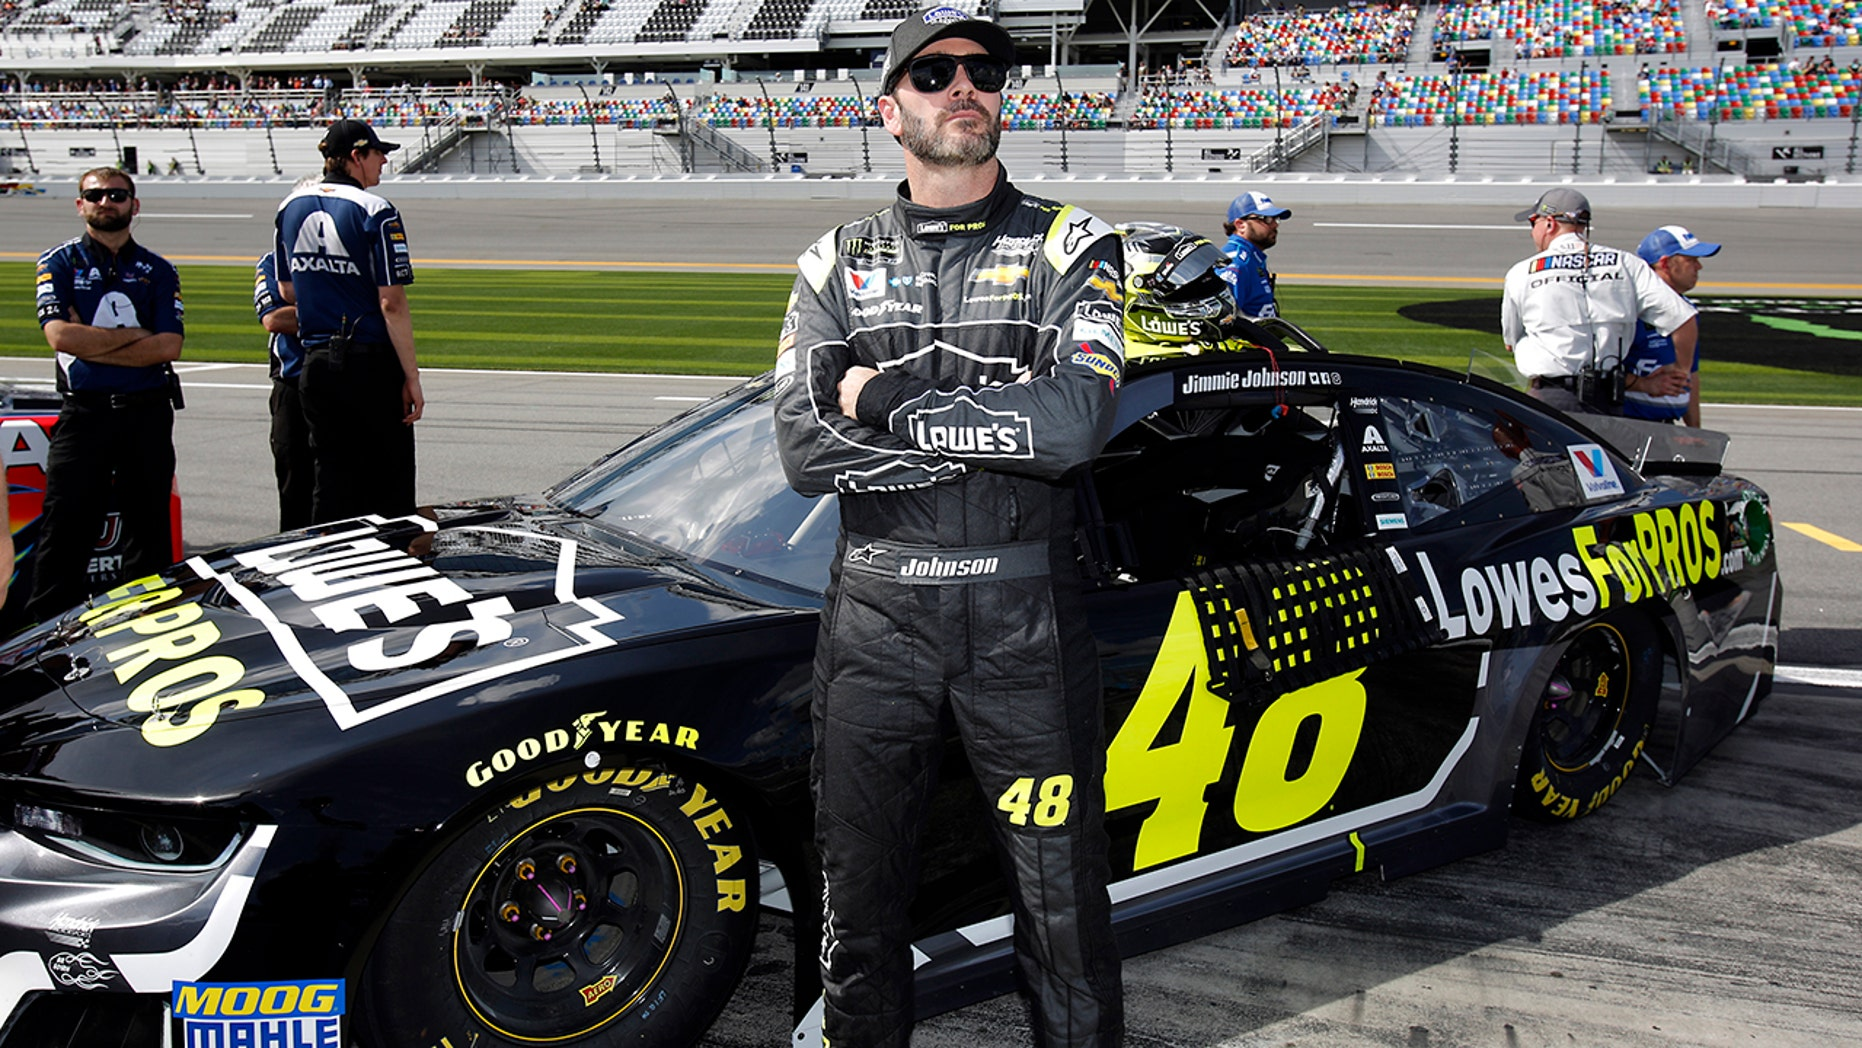 Johnson, seen here at Daytona in February, has been sponsored by Lowe's since 2001.